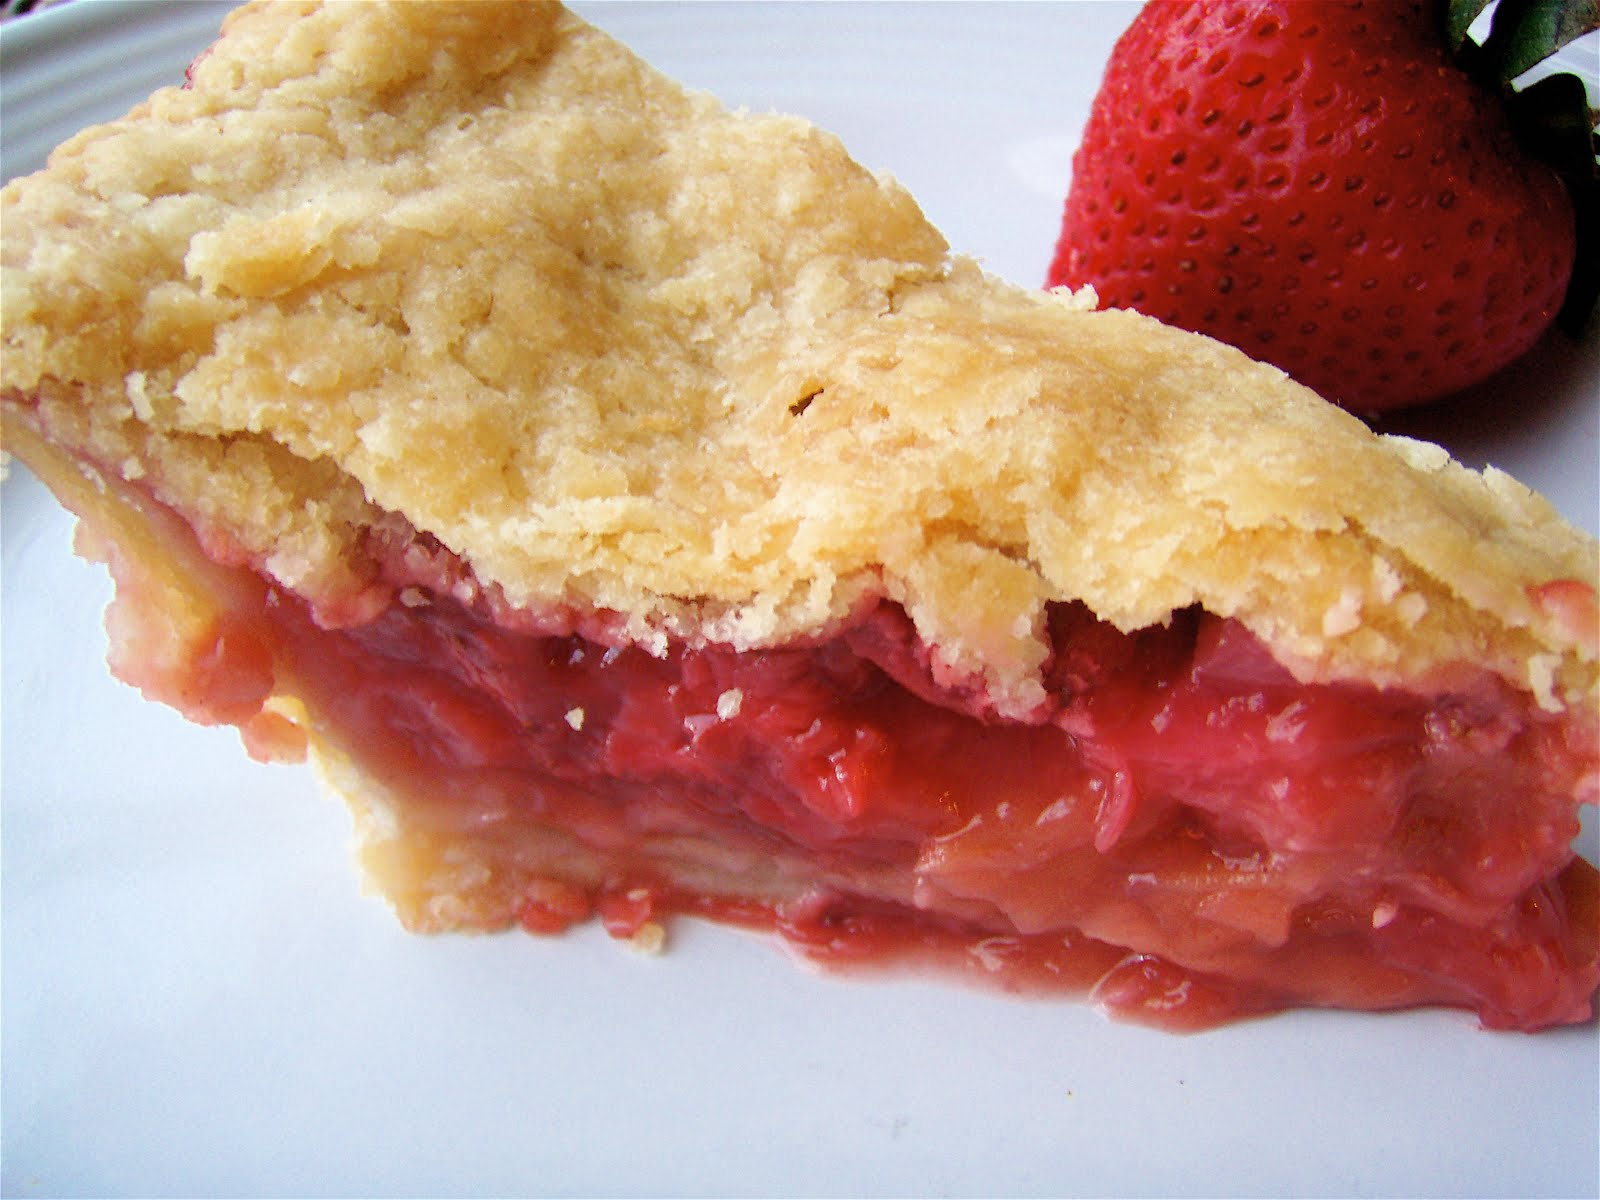 Our Forking Blog: Strawberry-Rhubarb Pie